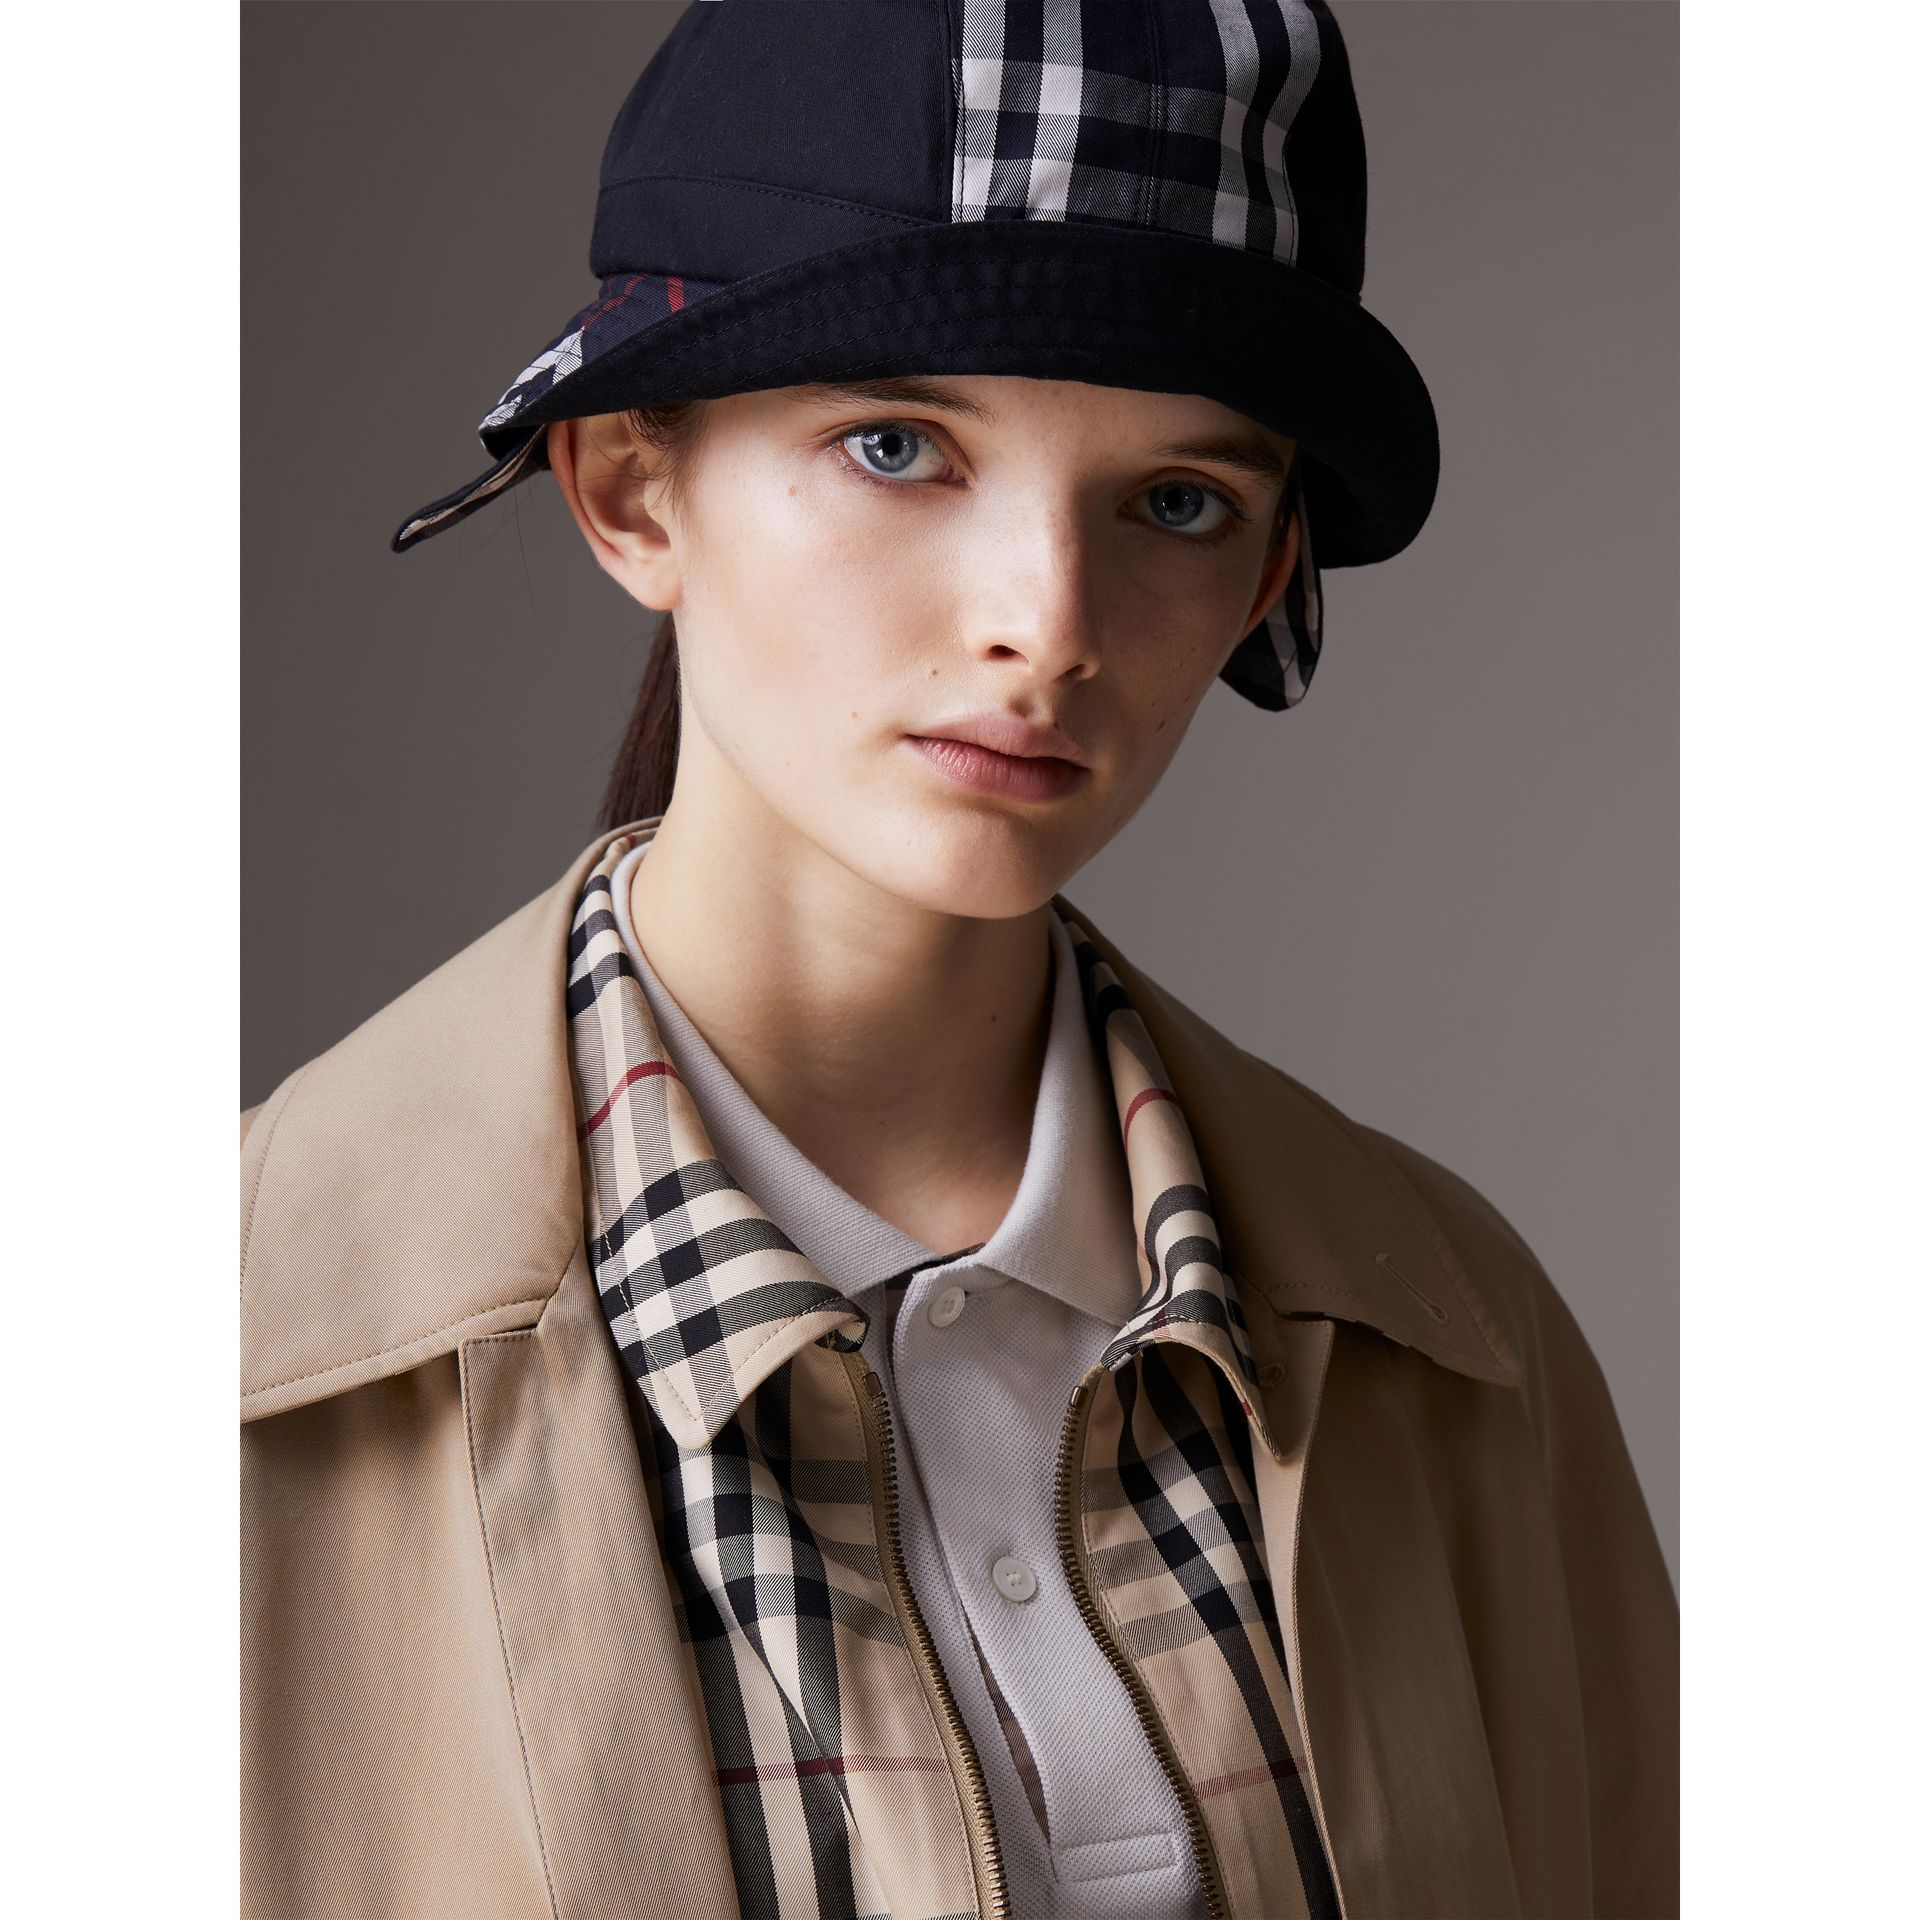 Gosha x Burberry Bucket Hat in Navy | Burberry - gallery image 3